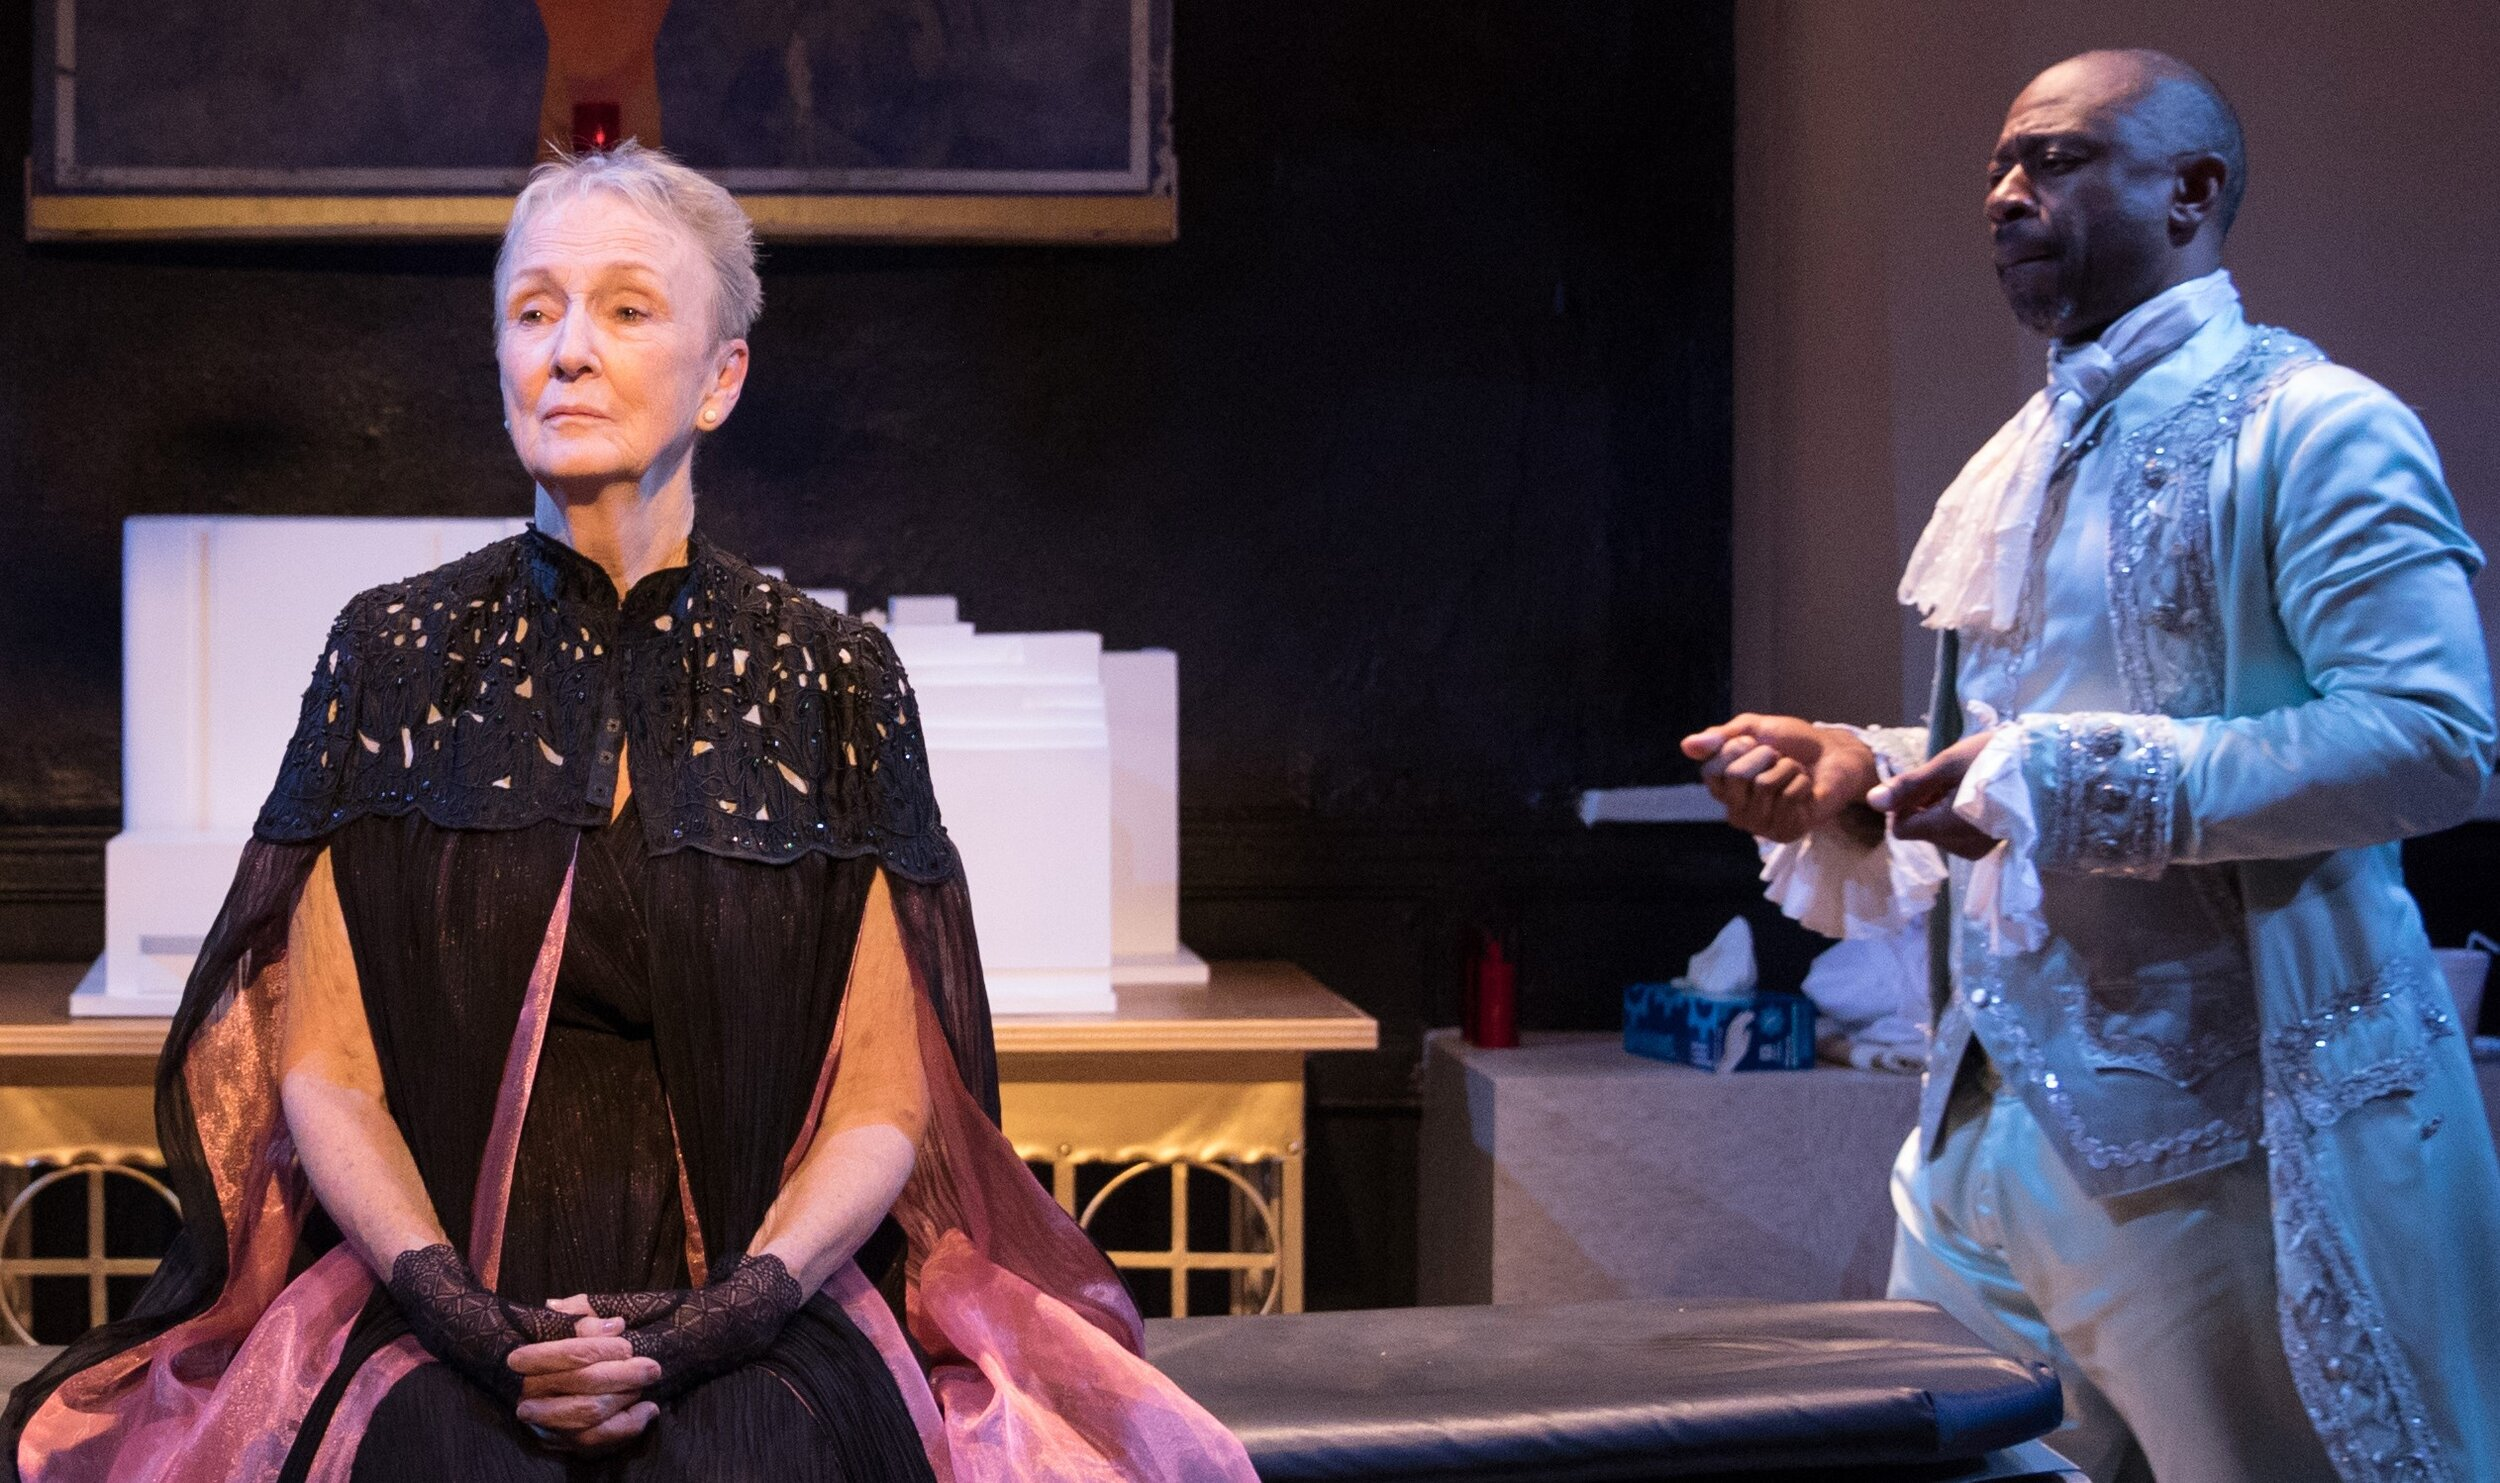 Elizabeth Ann Seton (Kathleen Chalfant) and Pierre Toussaint (Alvin Keith), a former slave who became one of New York's most important philanthropists, are the central characters in  Novenas for a Lost Hospital.